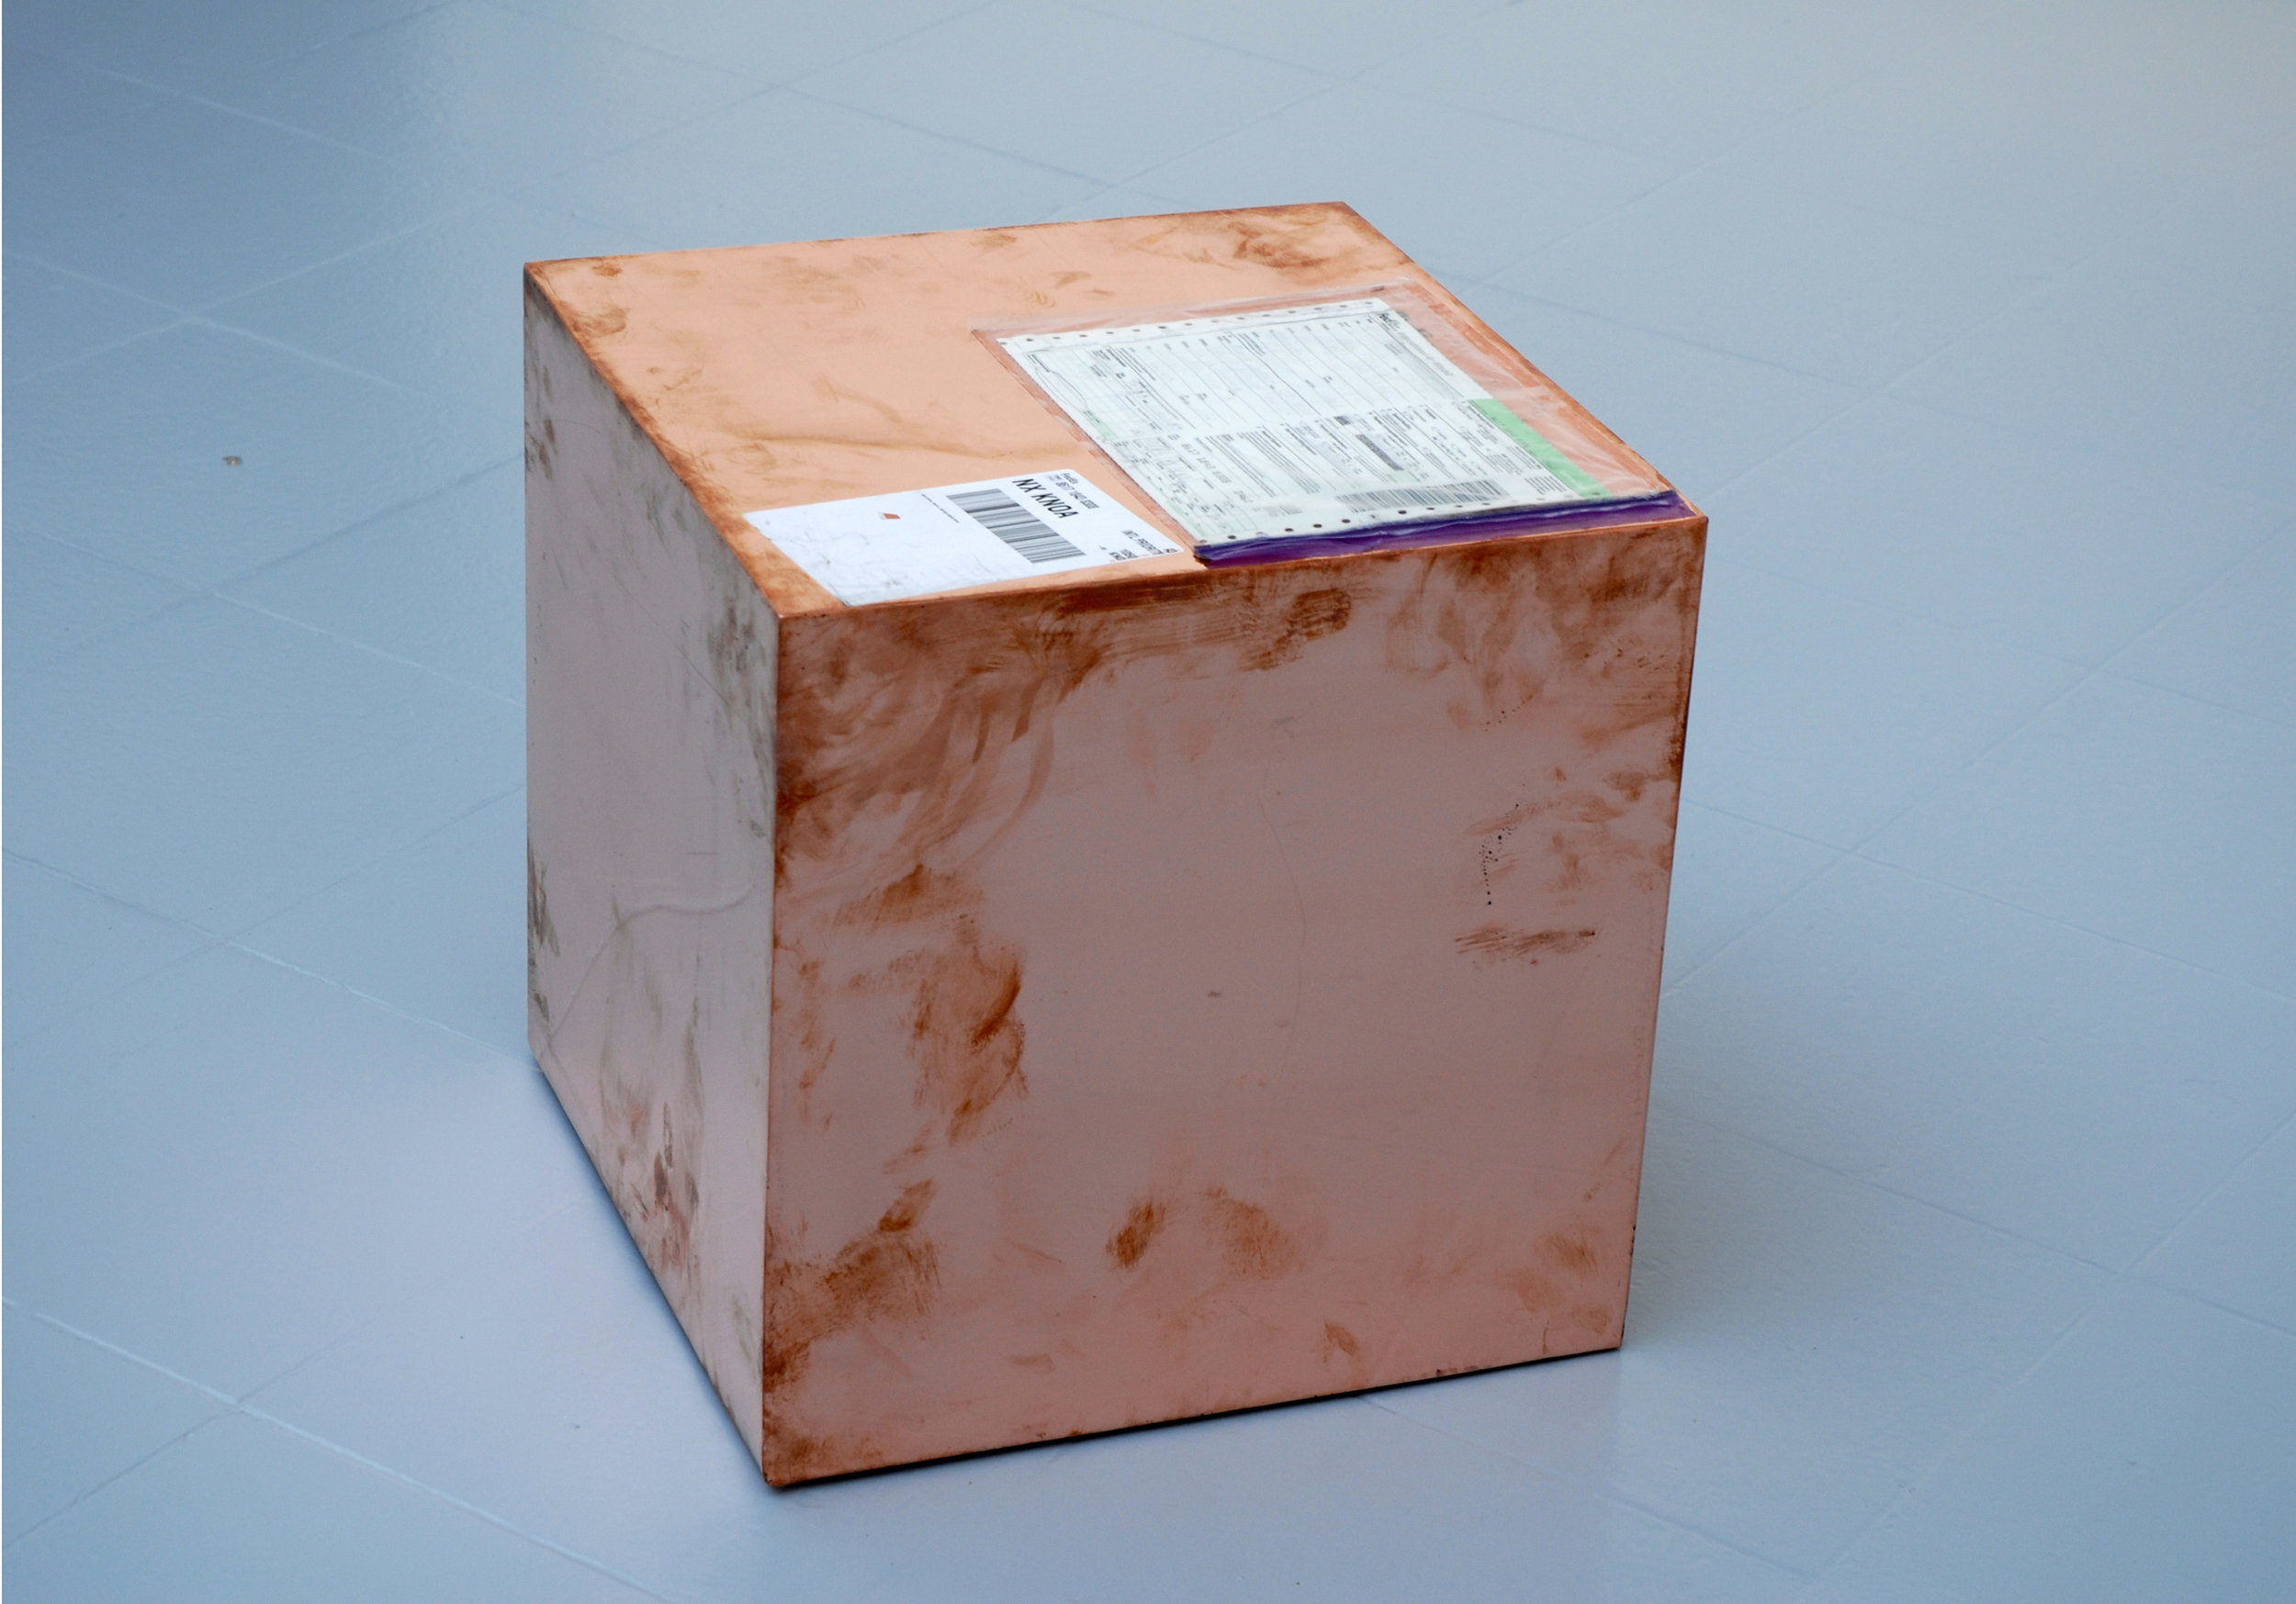 16-inch Copper (FedEx® Kraft Box  © 2005 FEDEX 330504 10/05 SSCC), International Priority, Los Angeles–Brussels trk#861718438308, August 31–September 2, 2011   2011–  Polished copper, accrued FedEx shipping and tracking labels  16 x 16 x 16 inches   FedEx Copper Works, 2009    Diapositives, 2011